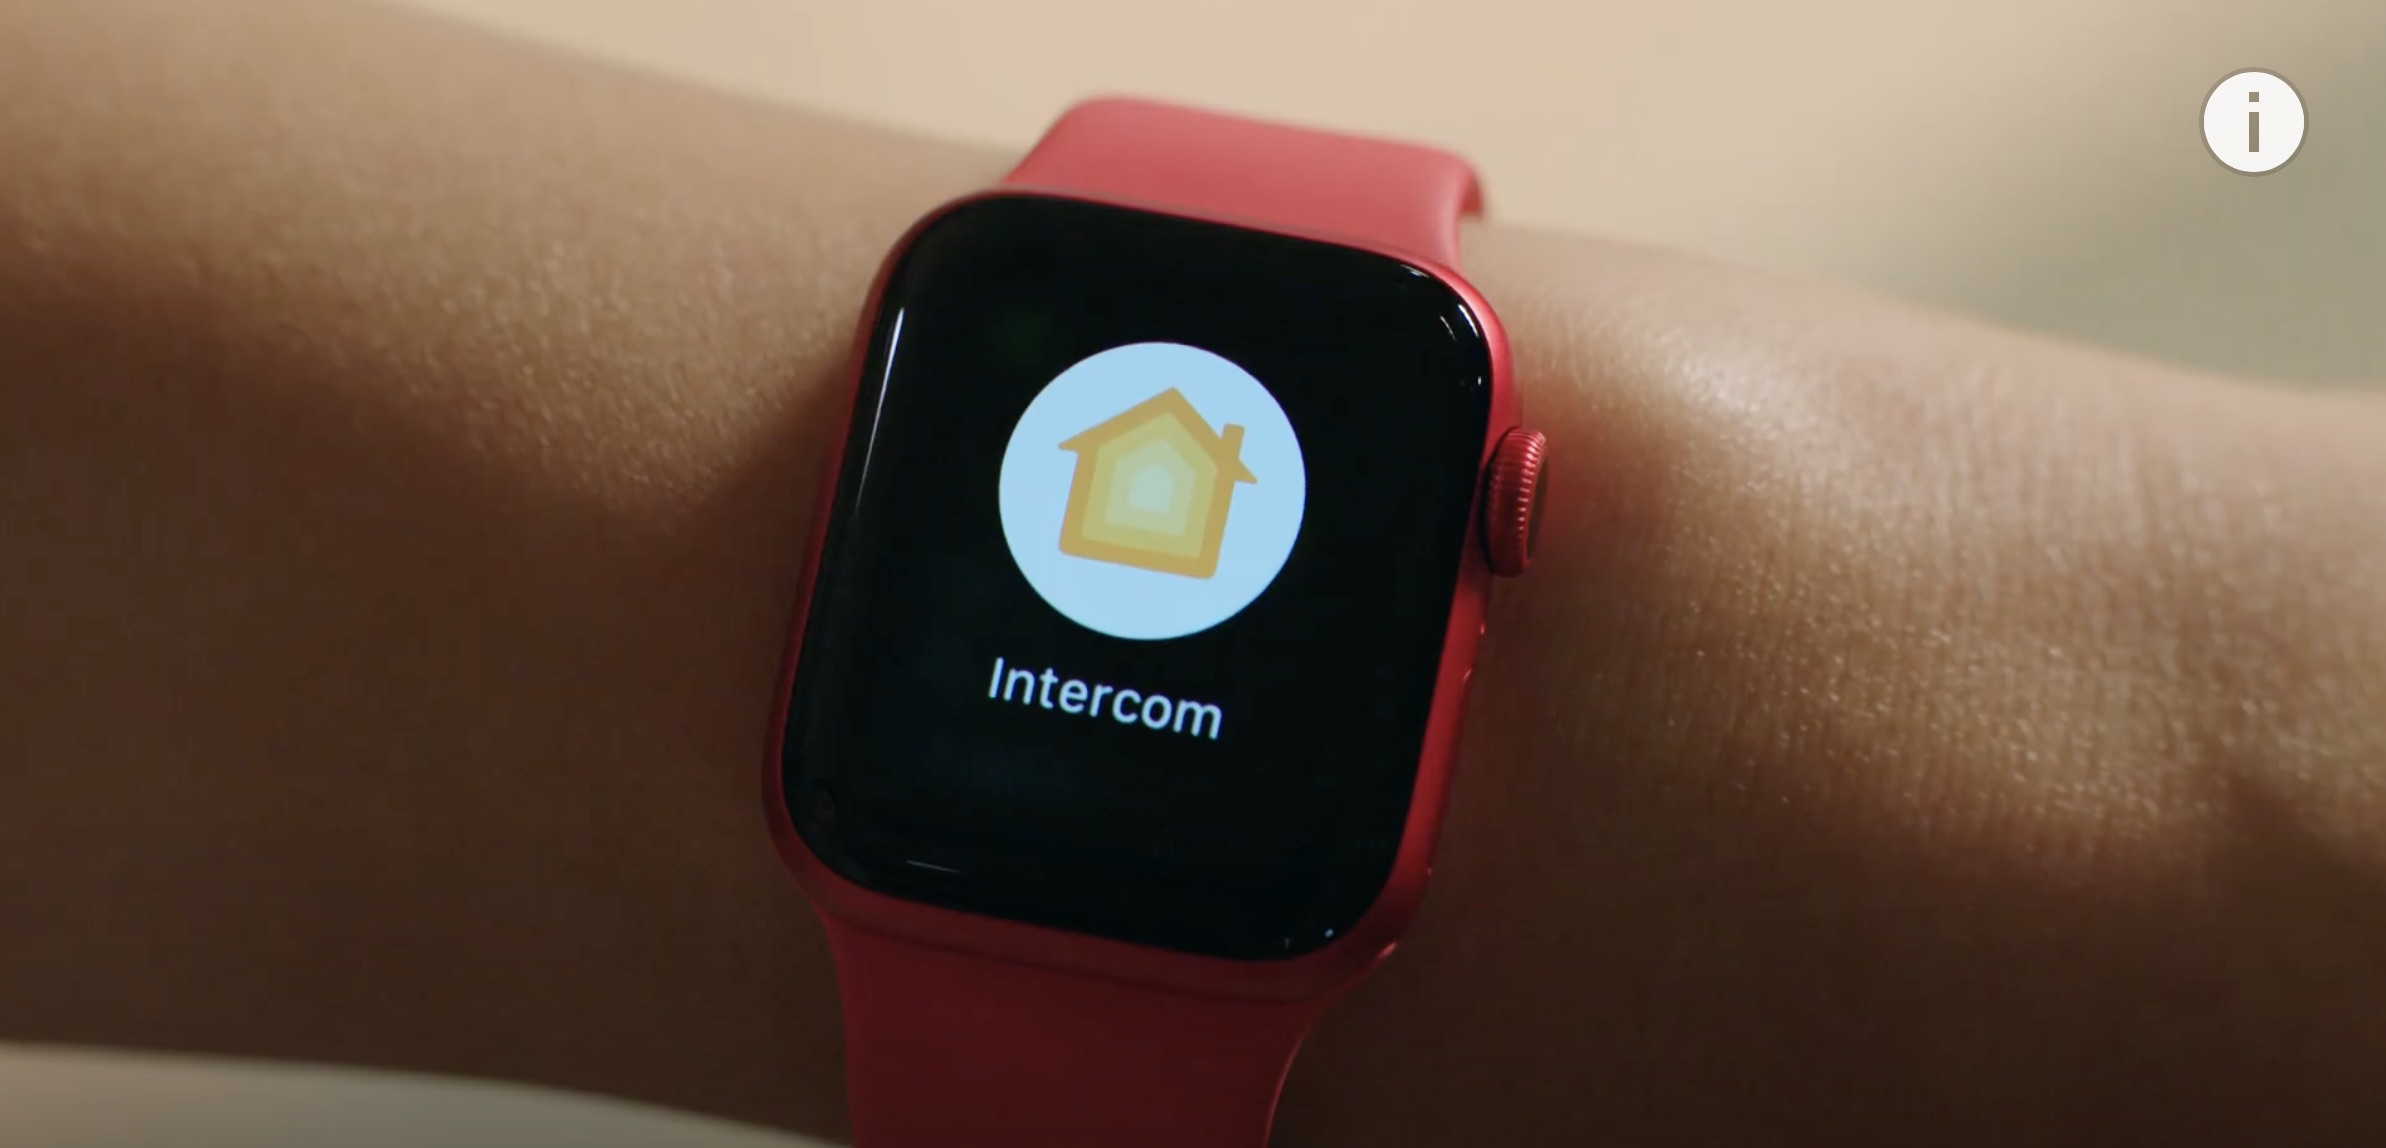 photo of Here's how HomePod's new Intercom feature works with Apple Watch image